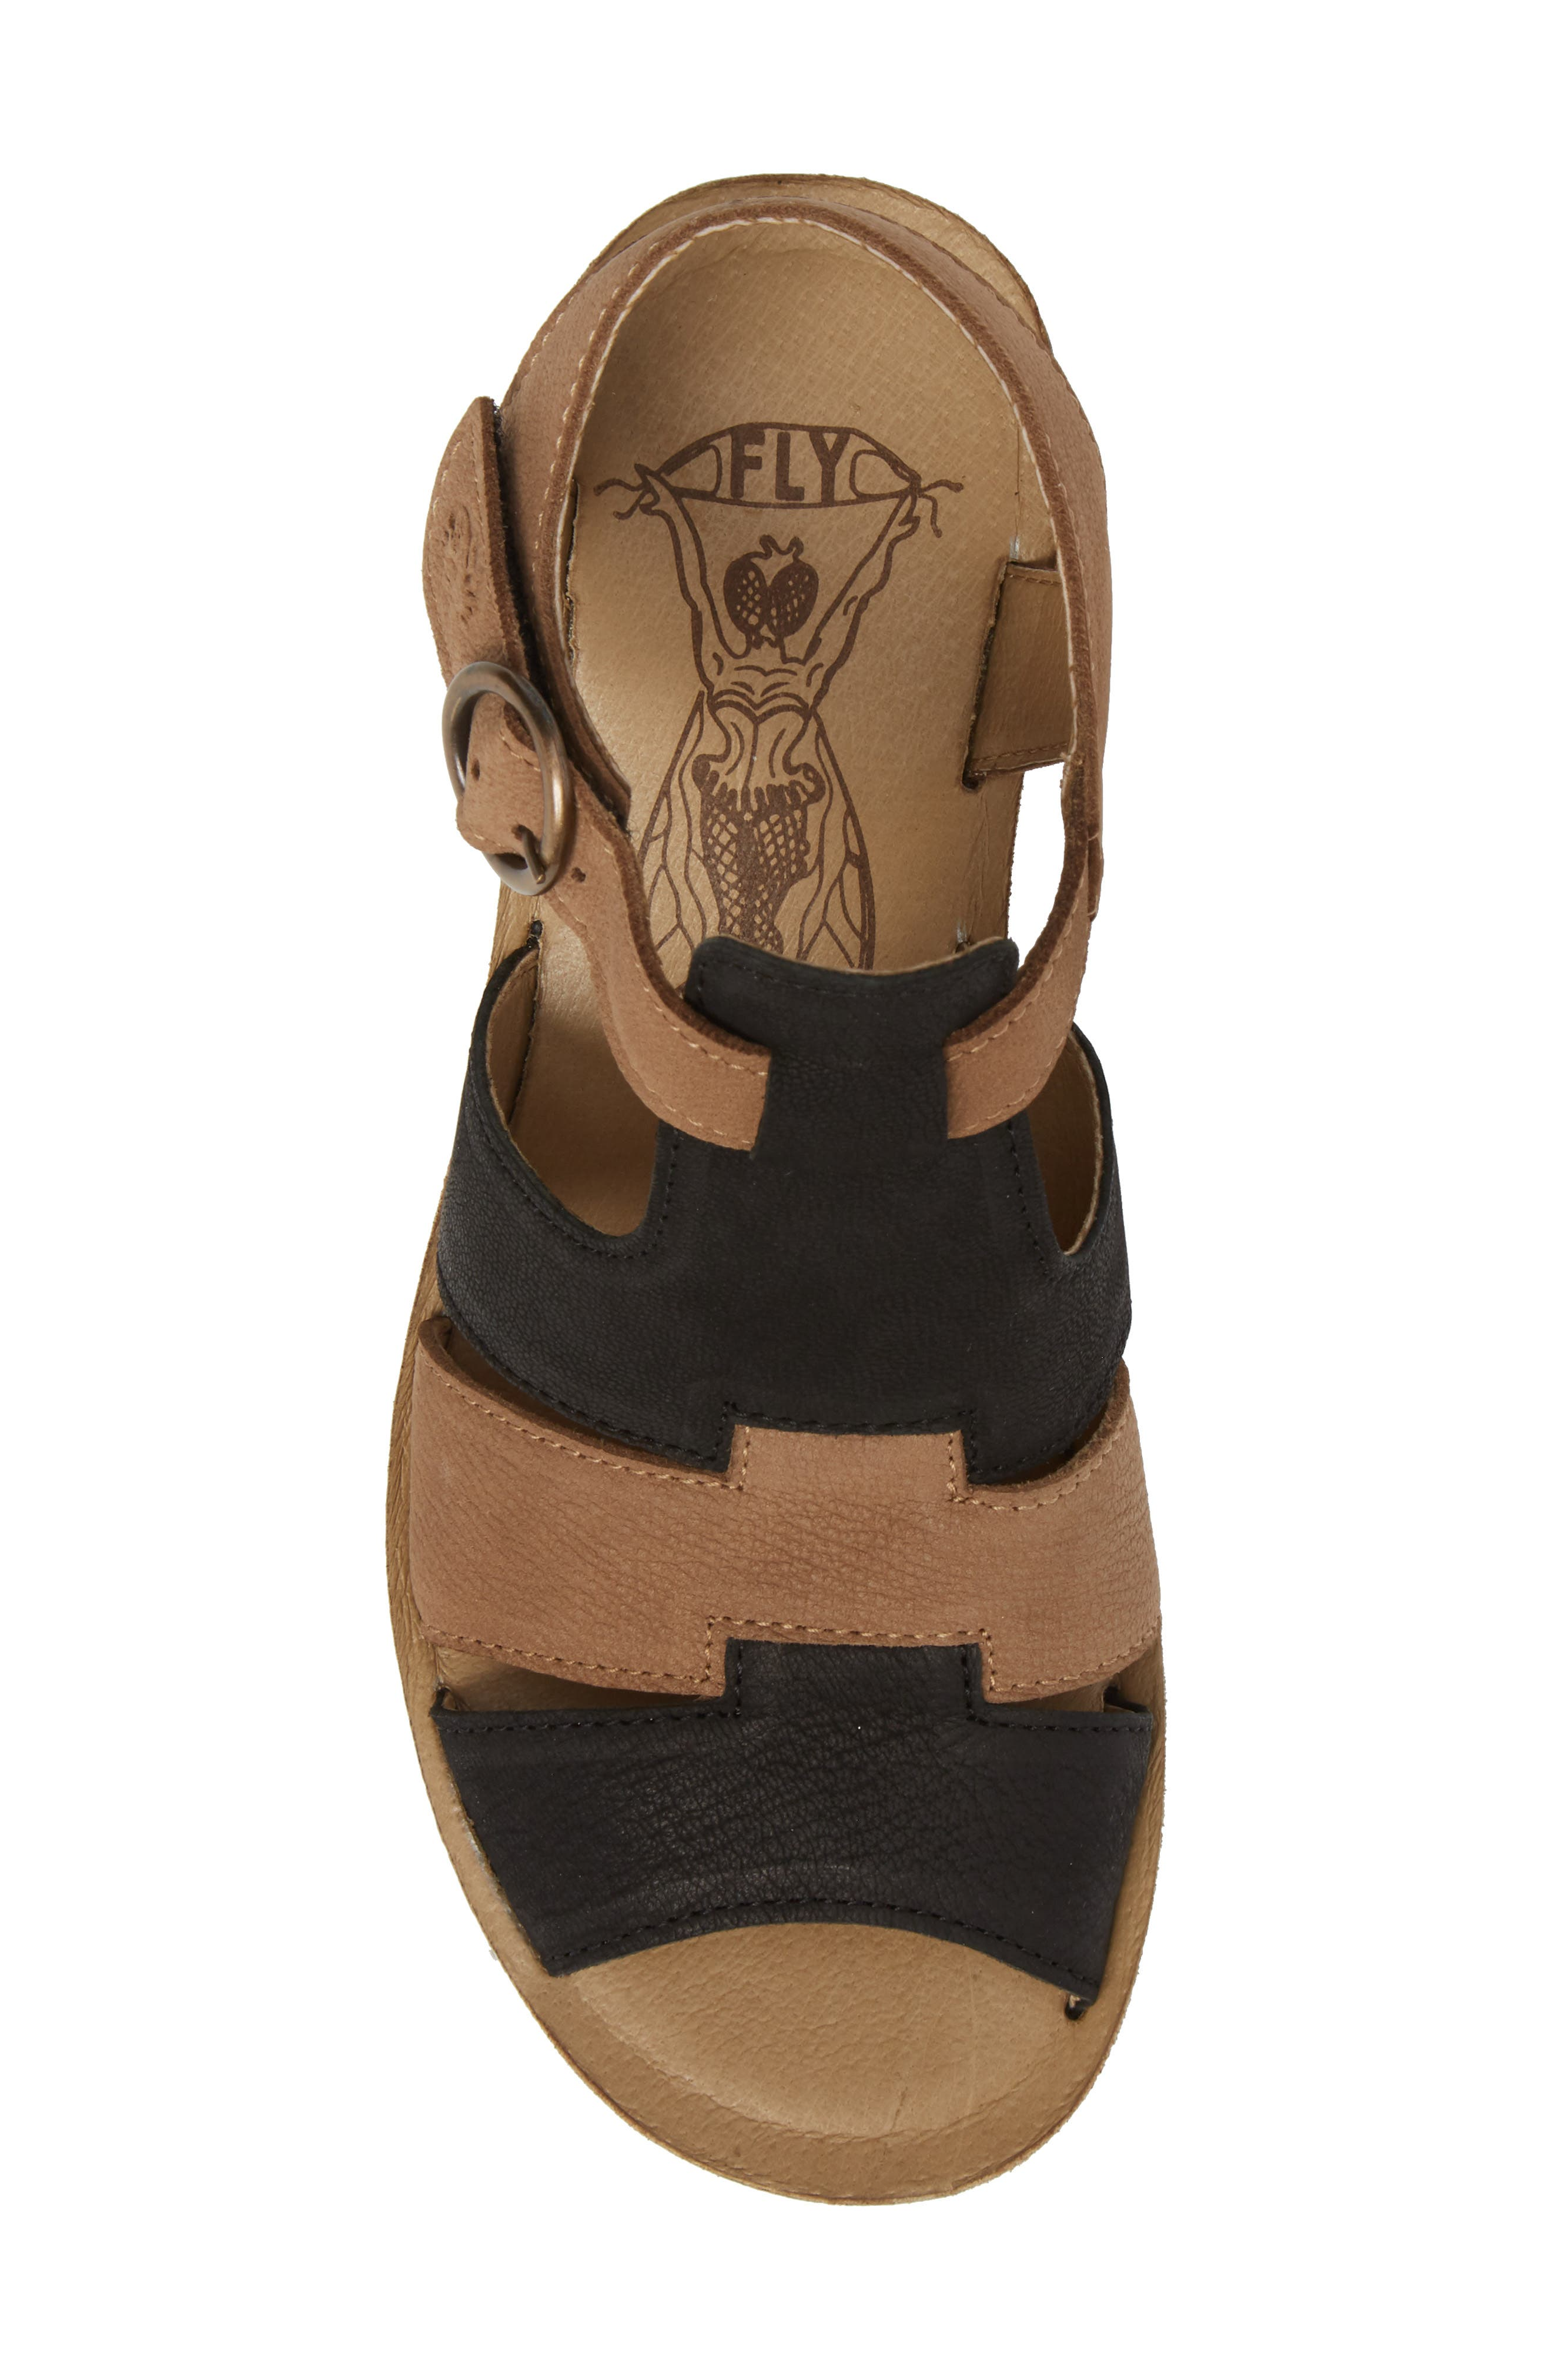 Yuni Wedge Sandal,                             Alternate thumbnail 5, color,                             Black/ Sand Cupido Leather